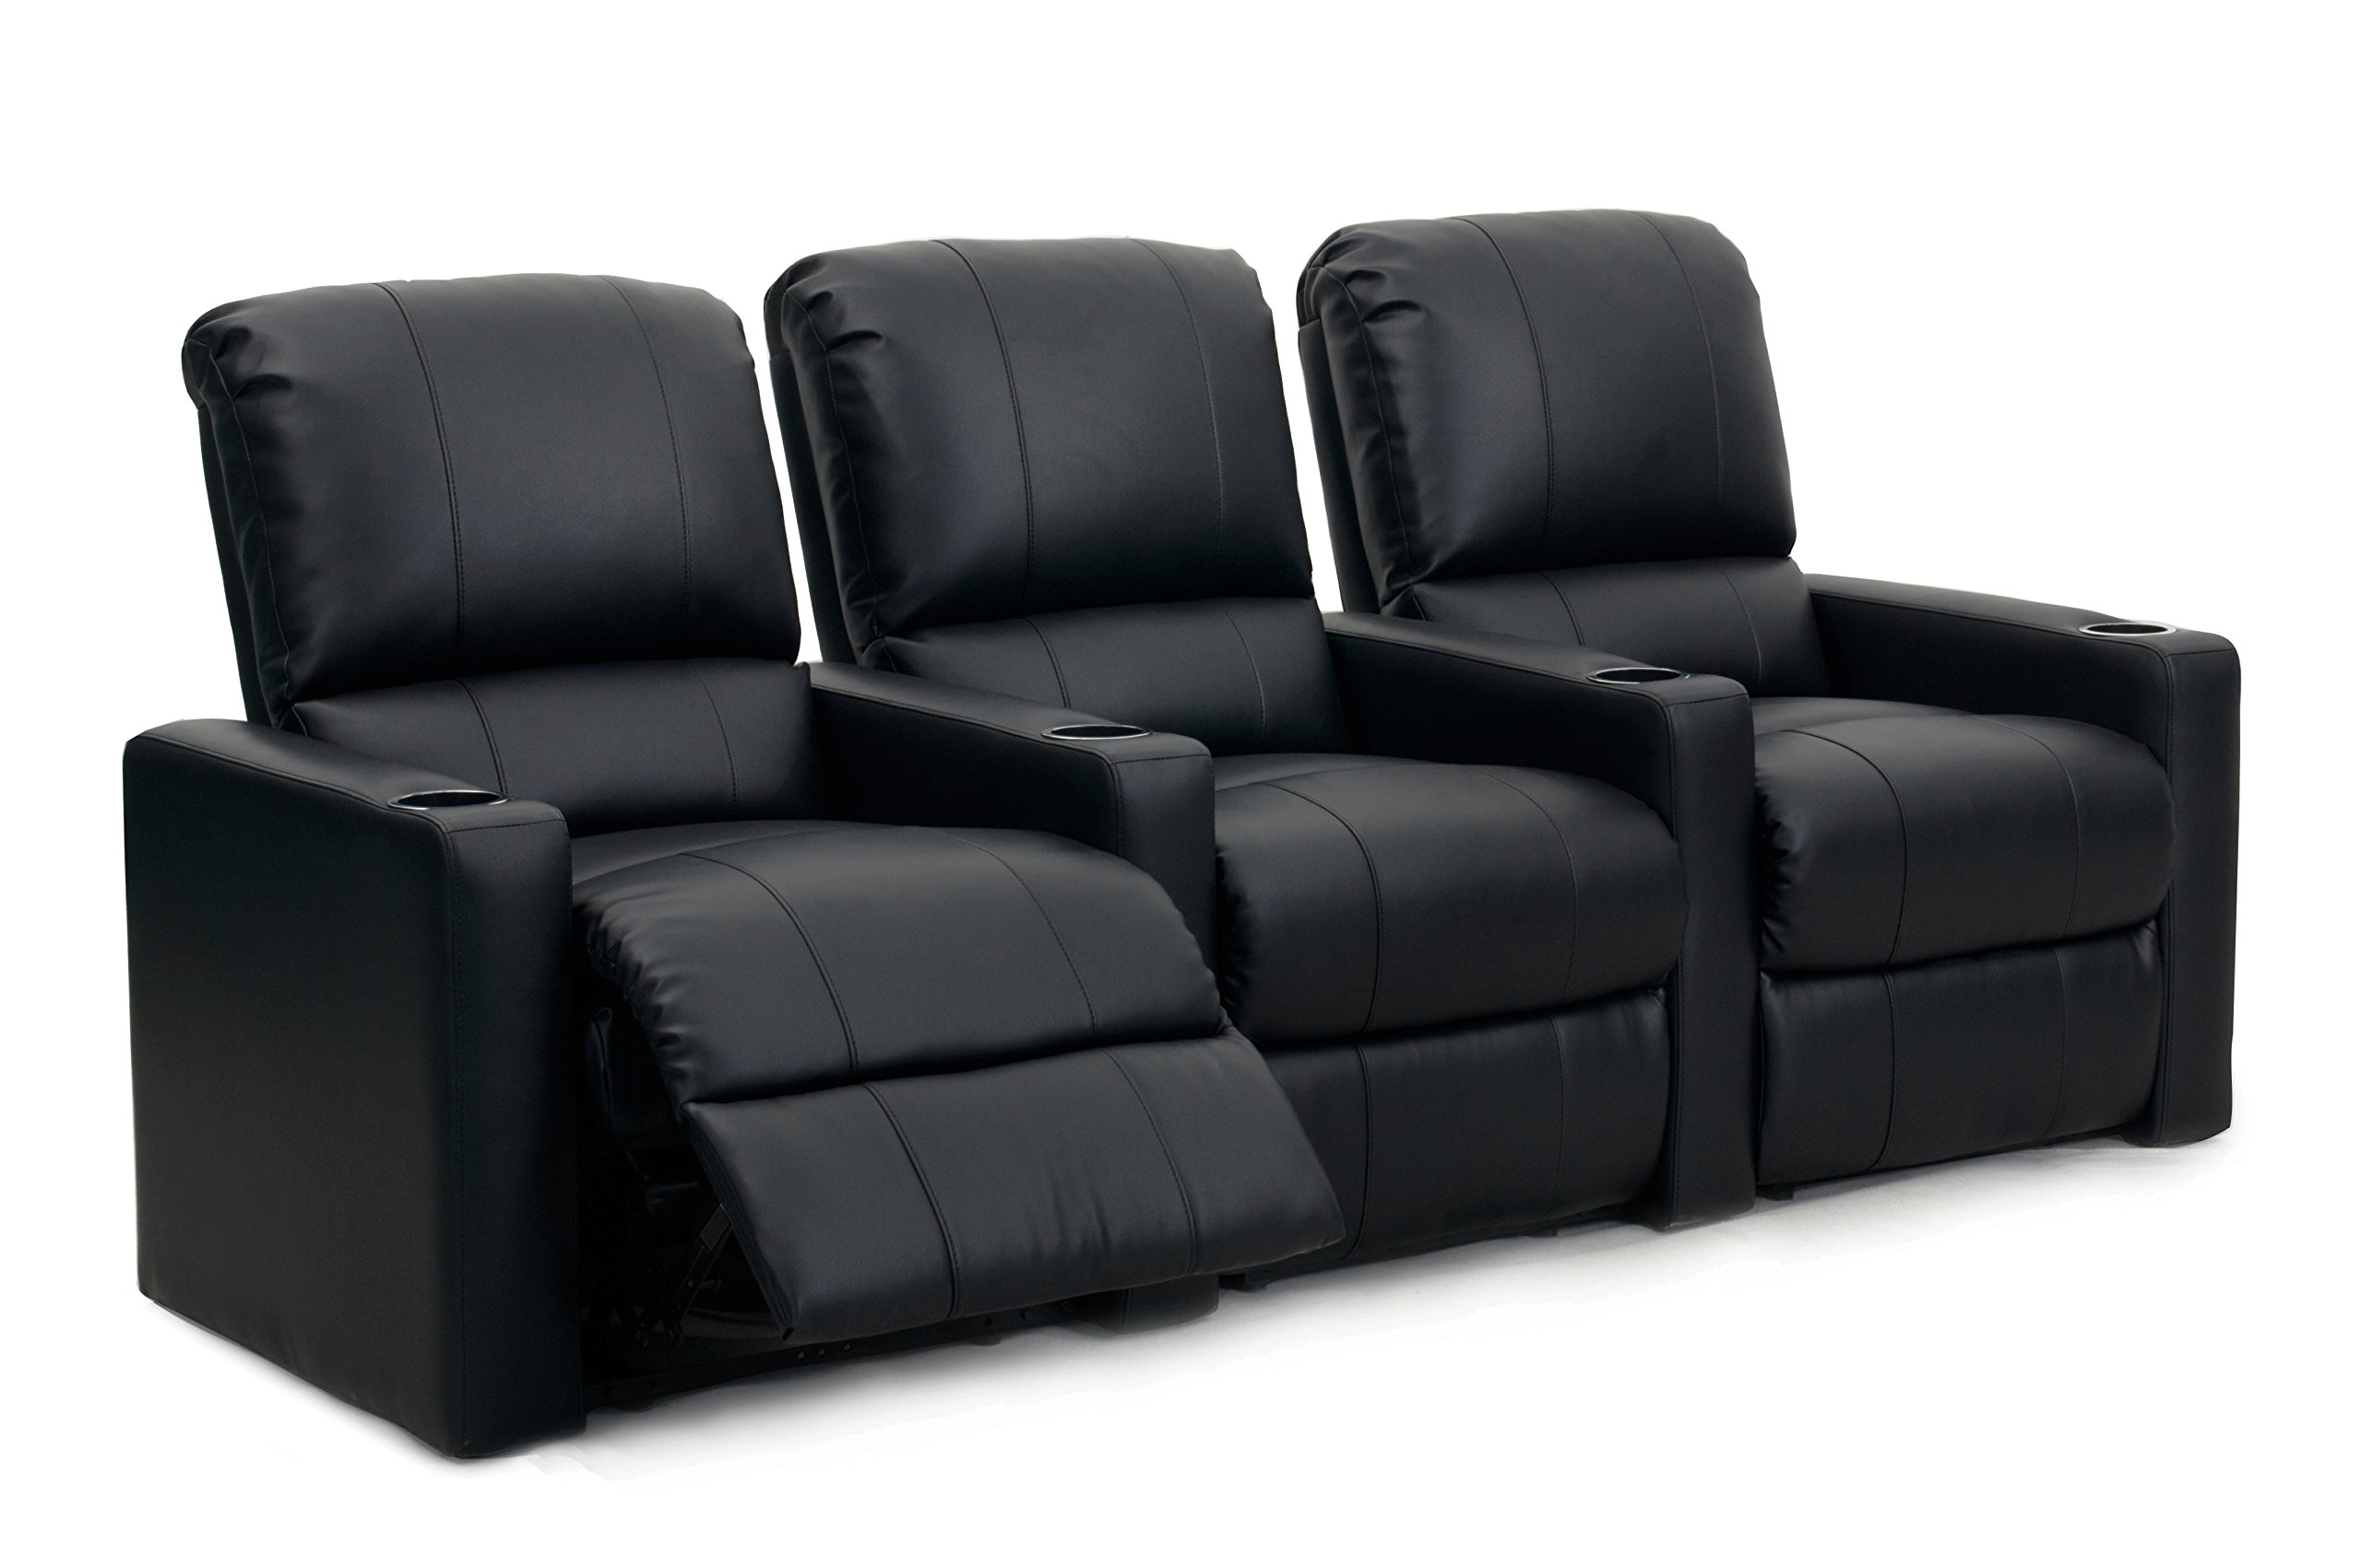 Octane Seating Octane Charger XS300 Leather Home Theater Recliner Set (Row of 3), Black by Octane Seating